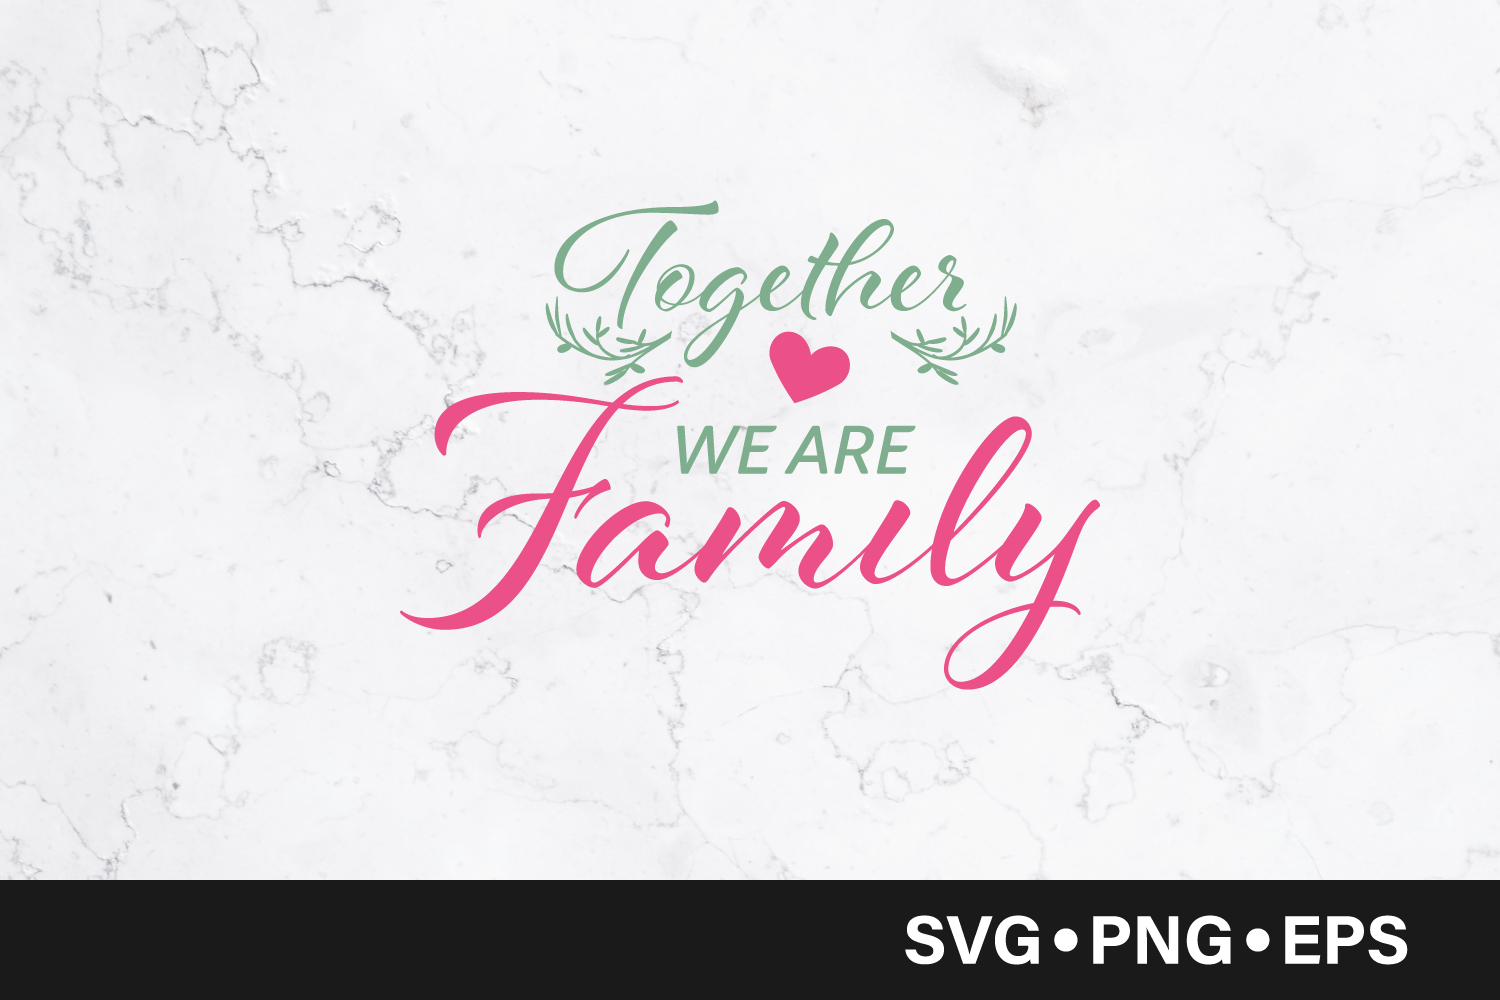 Download Free Together We Are Family Quote Graphic By Vectorbundles Creative Fabrica for Cricut Explore, Silhouette and other cutting machines.